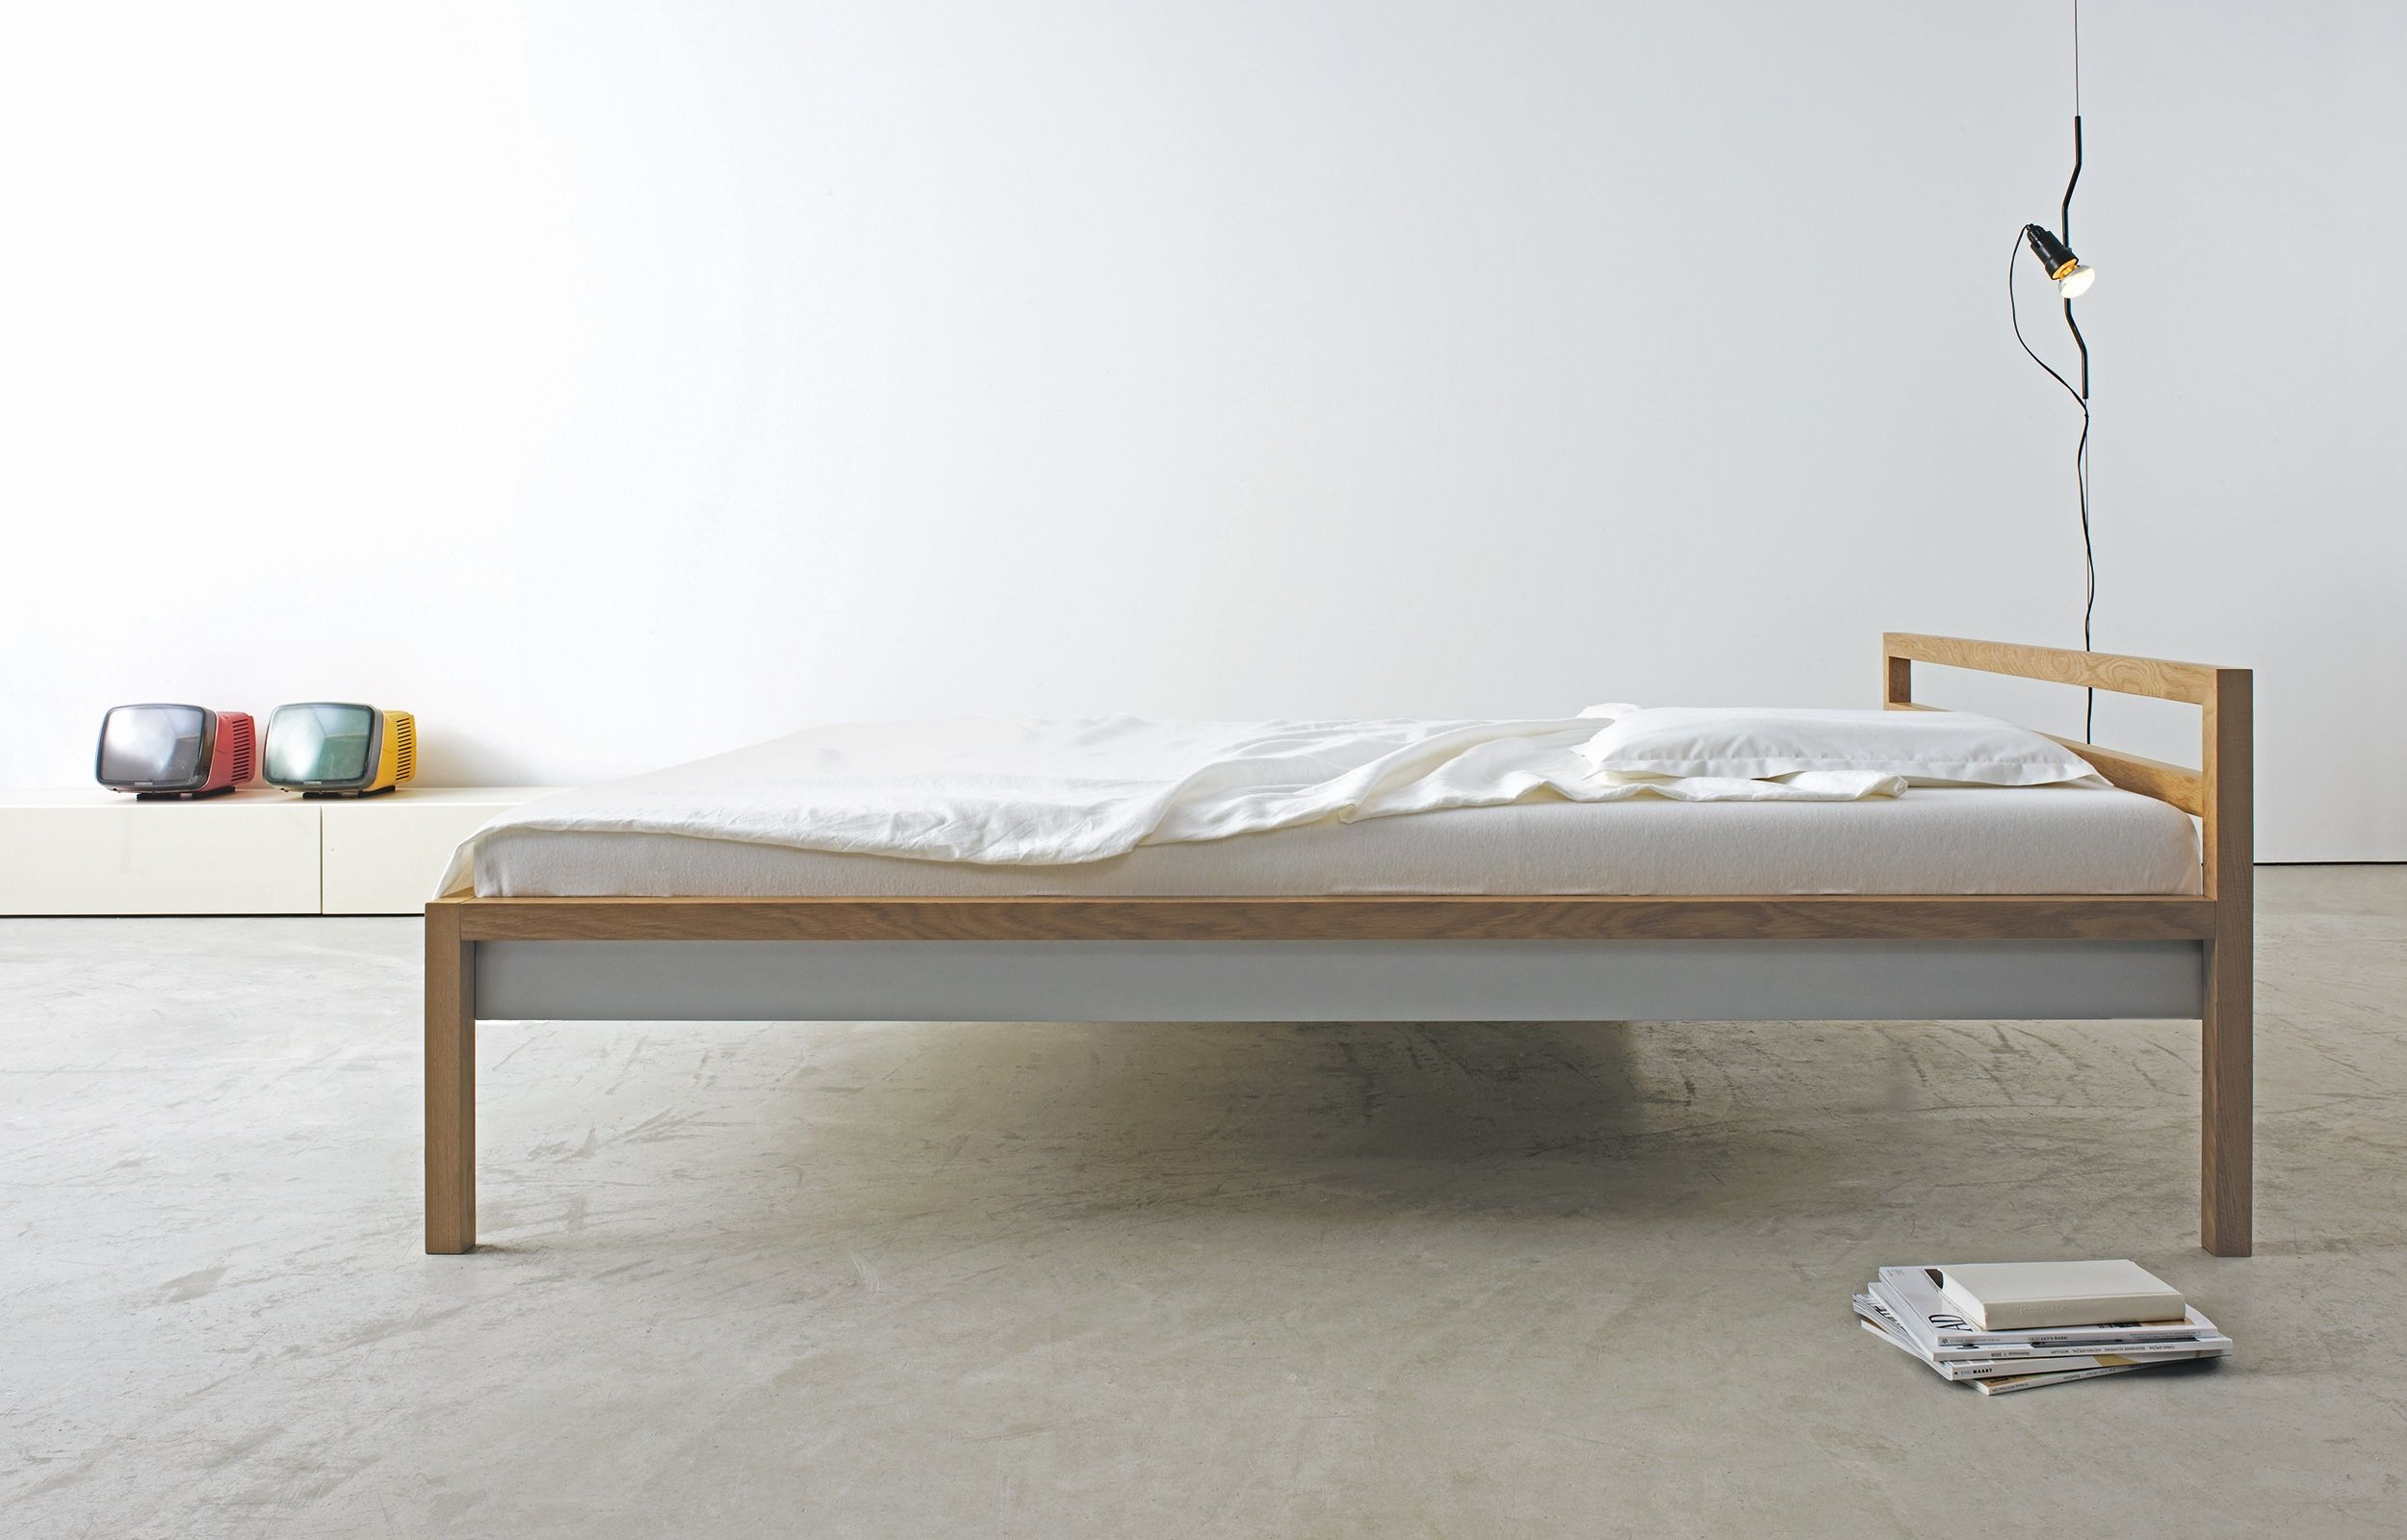 Massivholzbetten design  Bedroom furniture by more. ROOM bed presented in white pigmented ...